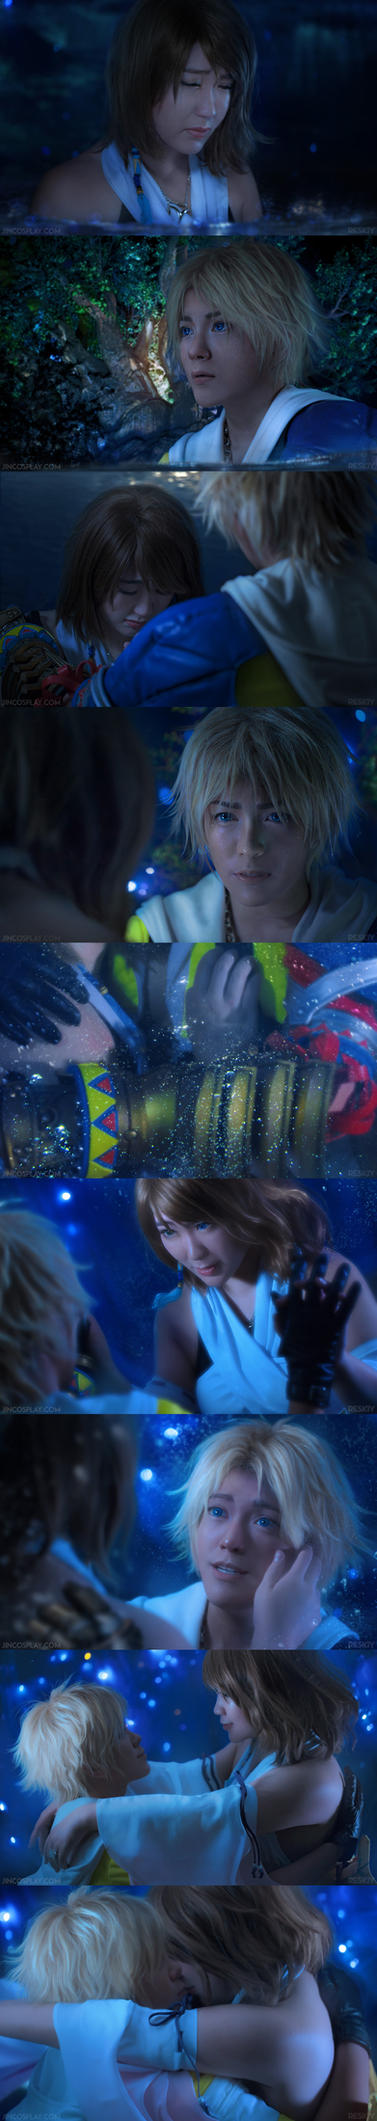 Final Fantasy X: Suteki da ne by behindinfinity